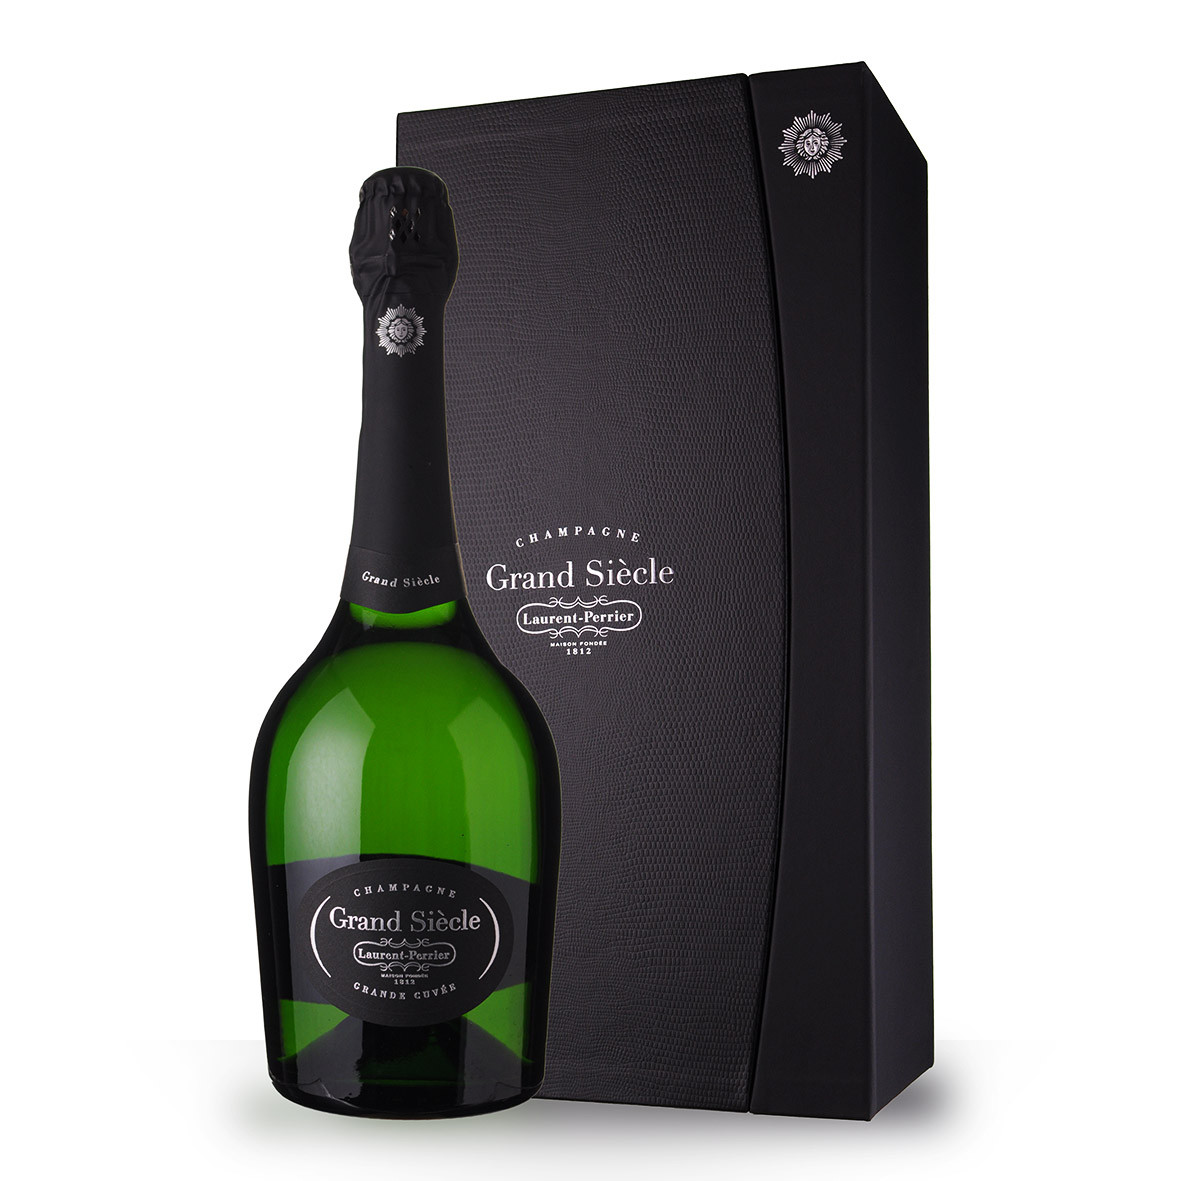 Champagne Laurent-Perrier Grand Siècle Brut 75cl Coffret www.odyssee-vins.com